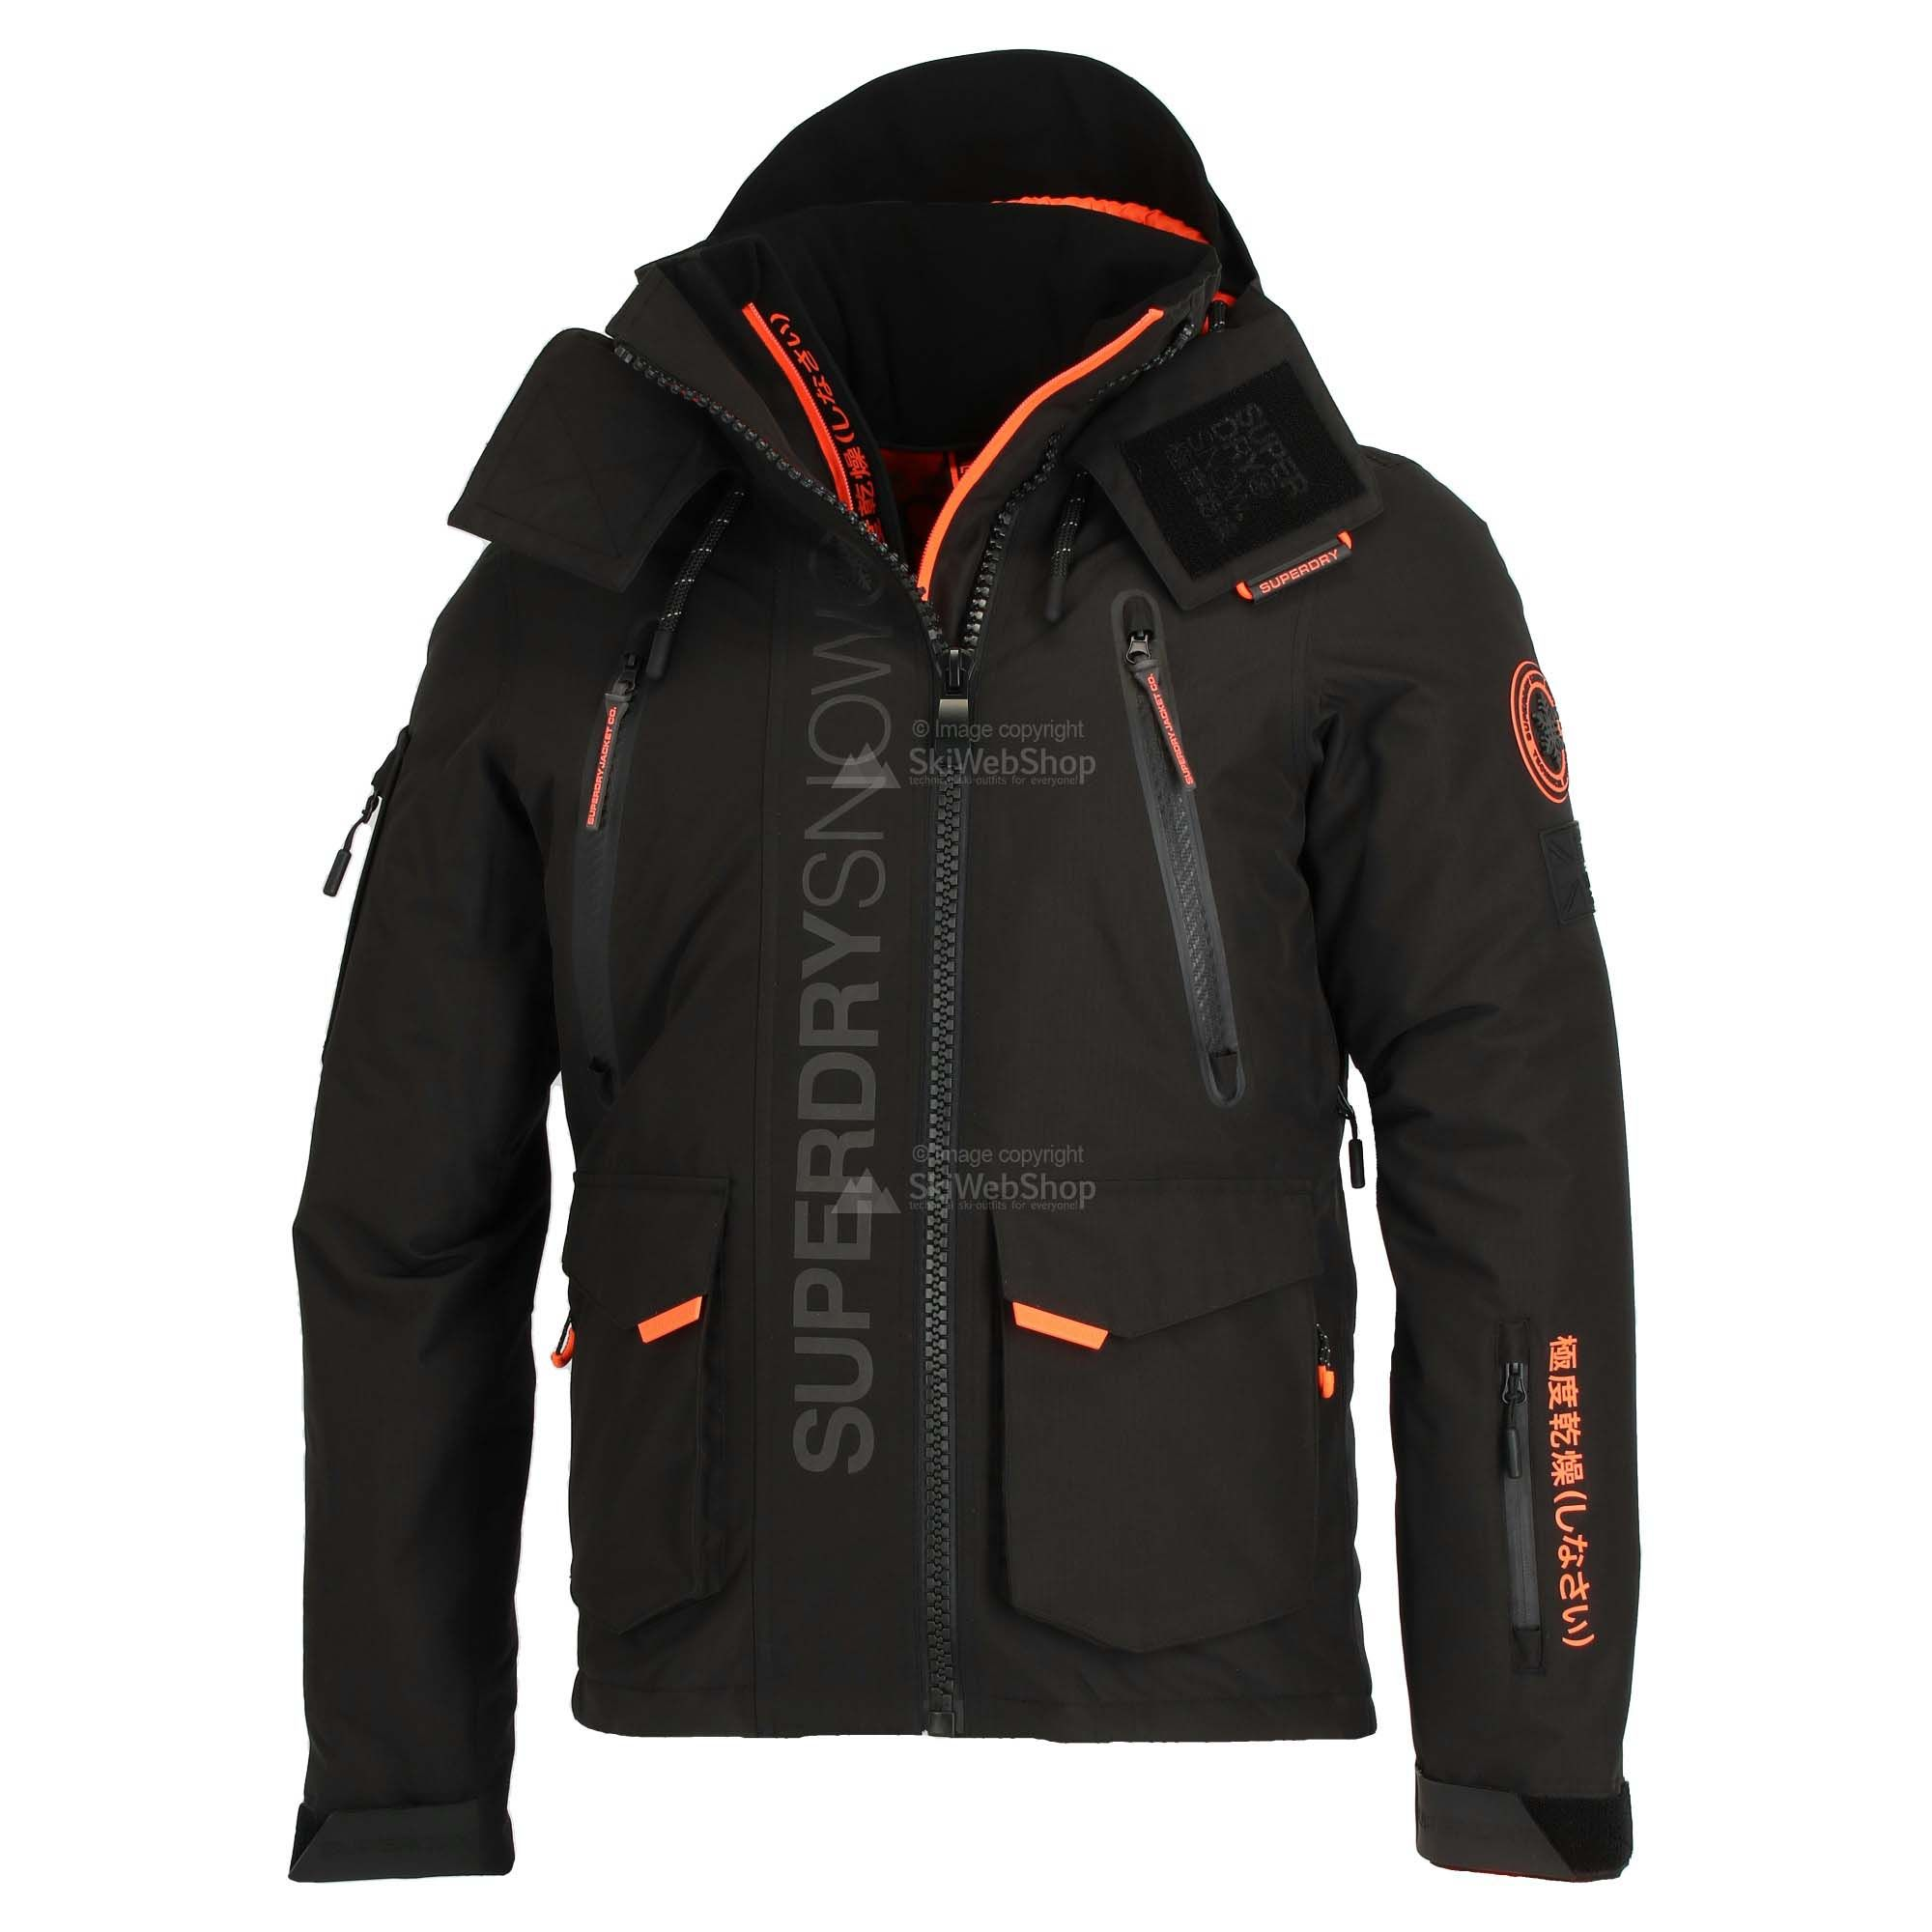 Superdry Ultimate Snow Rescue Ski Jacket Men Black Skiwebshopskiwebshop Com